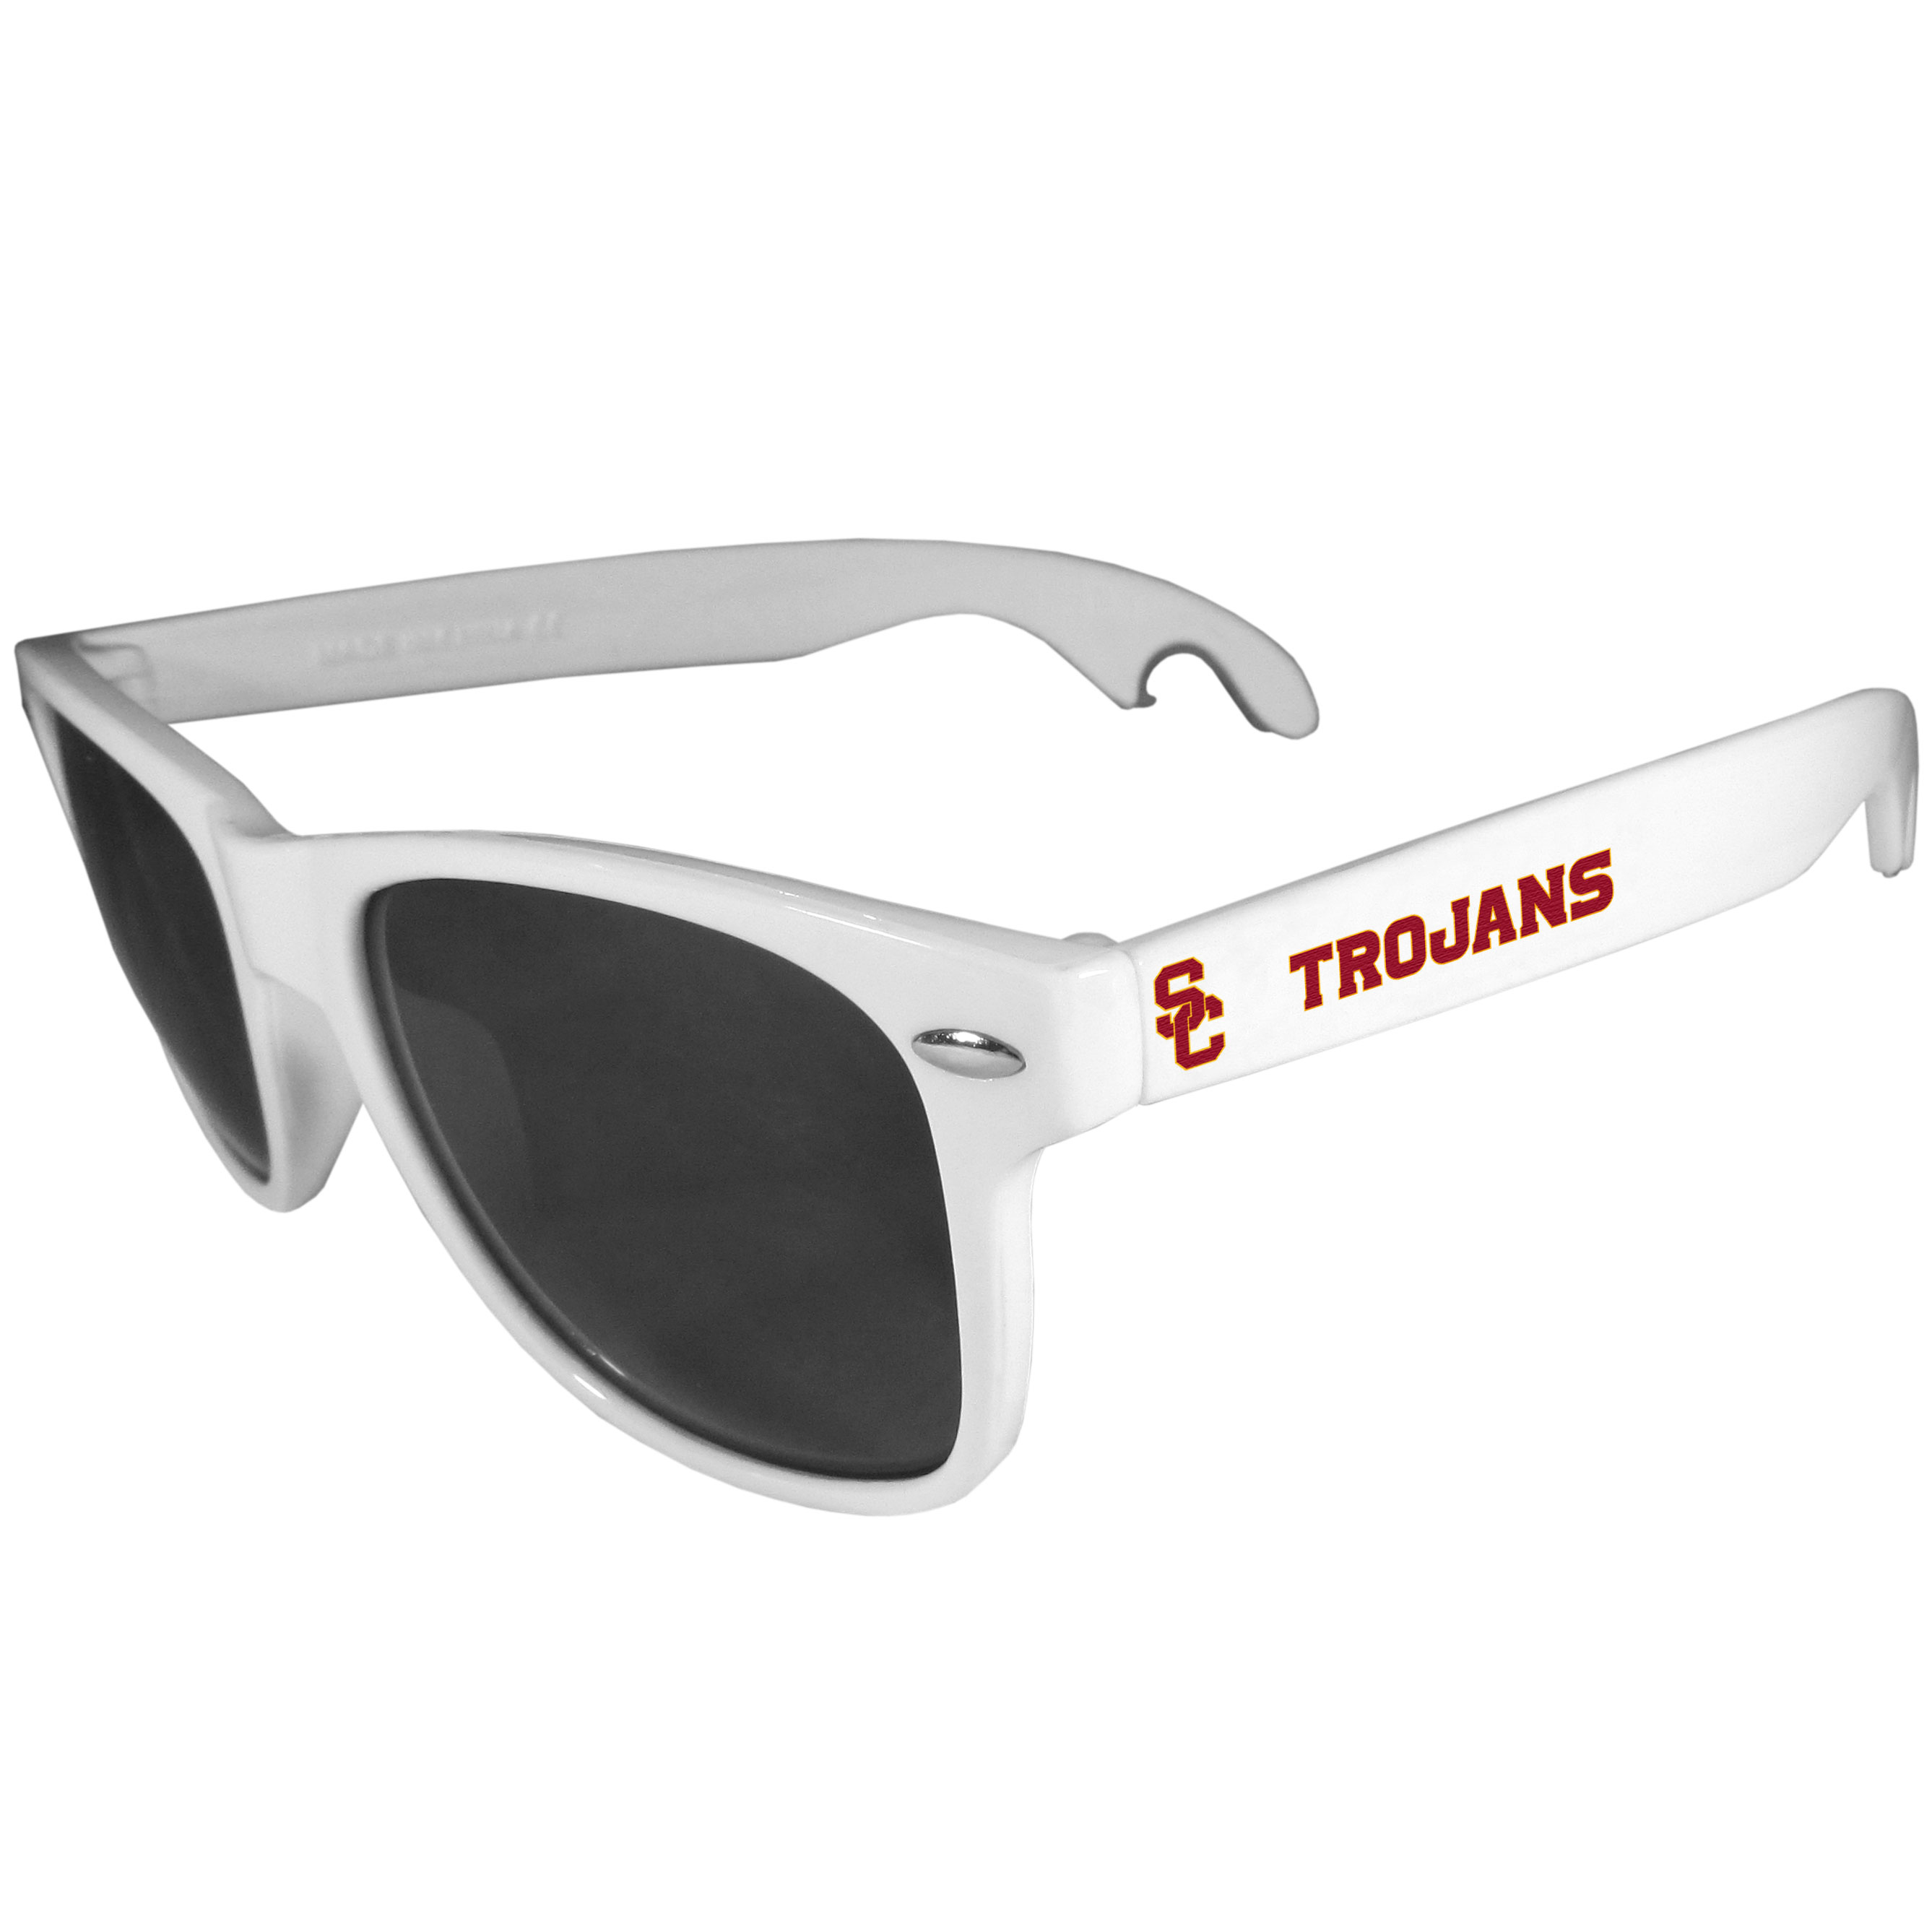 USC Trojans Beachfarer Bottle Opener Sunglasses, White - Seriously, these sunglasses open bottles! Keep the party going with these amazing USC Trojans bottle opener sunglasses. The stylish retro frames feature team designs on the arms and functional bottle openers on the end of the arms. Whether you are at the beach or having a backyard BBQ on game day, these shades will keep your eyes protected with 100% UVA/UVB protection and keep you hydrated with the handy bottle opener arms.